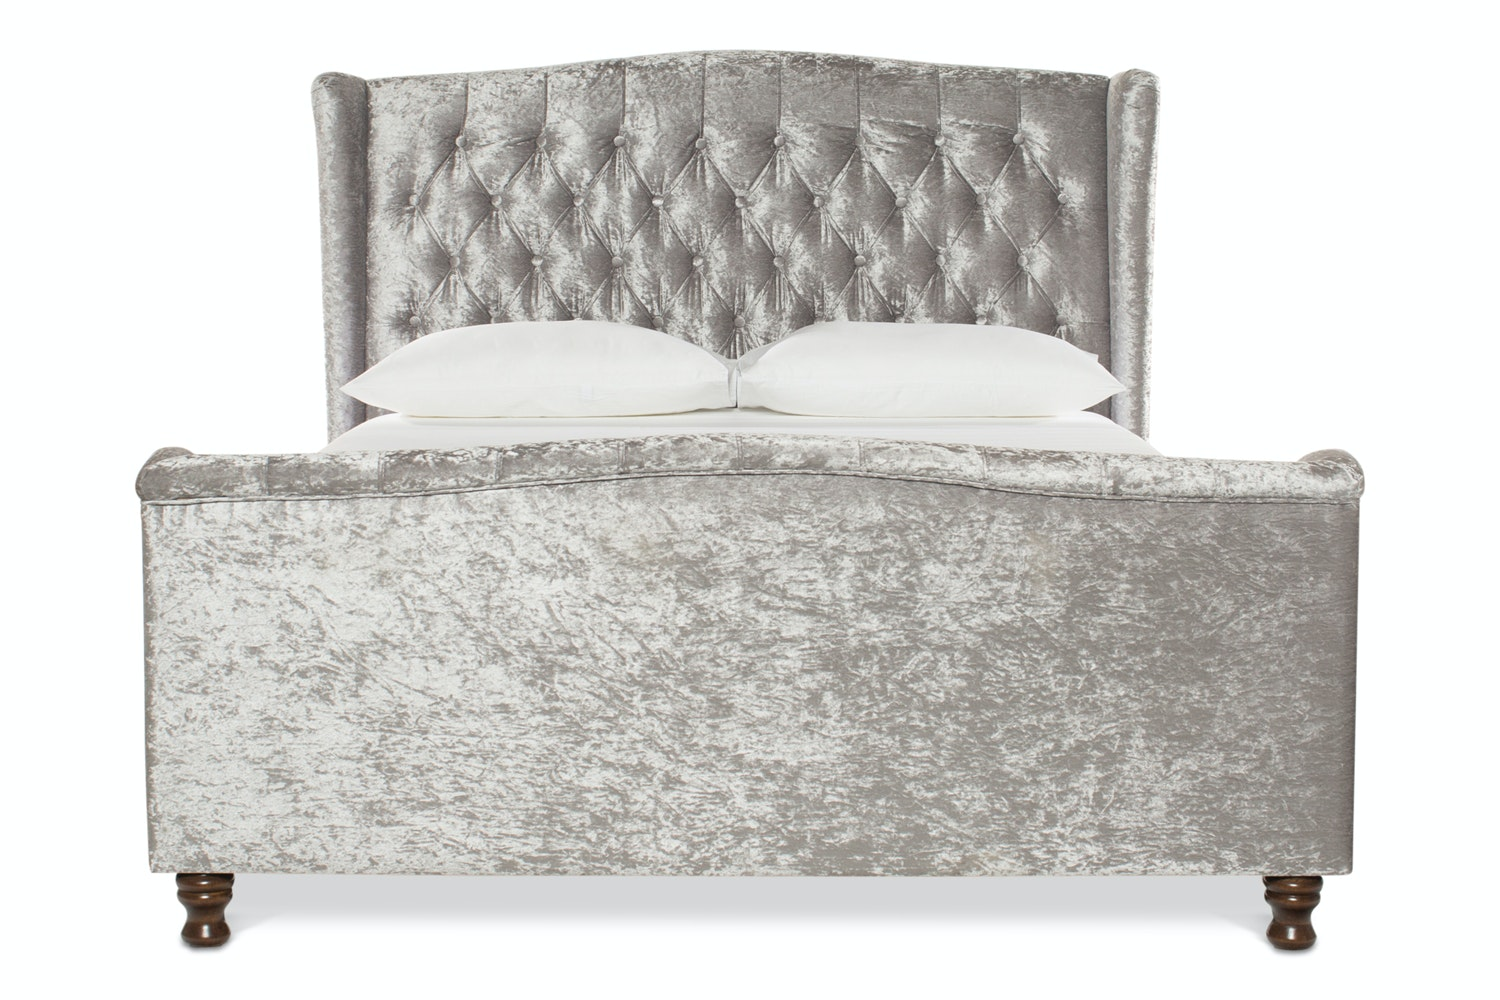 Hayfield Bed Frame | 5Ft | Silver Crushed Velvet